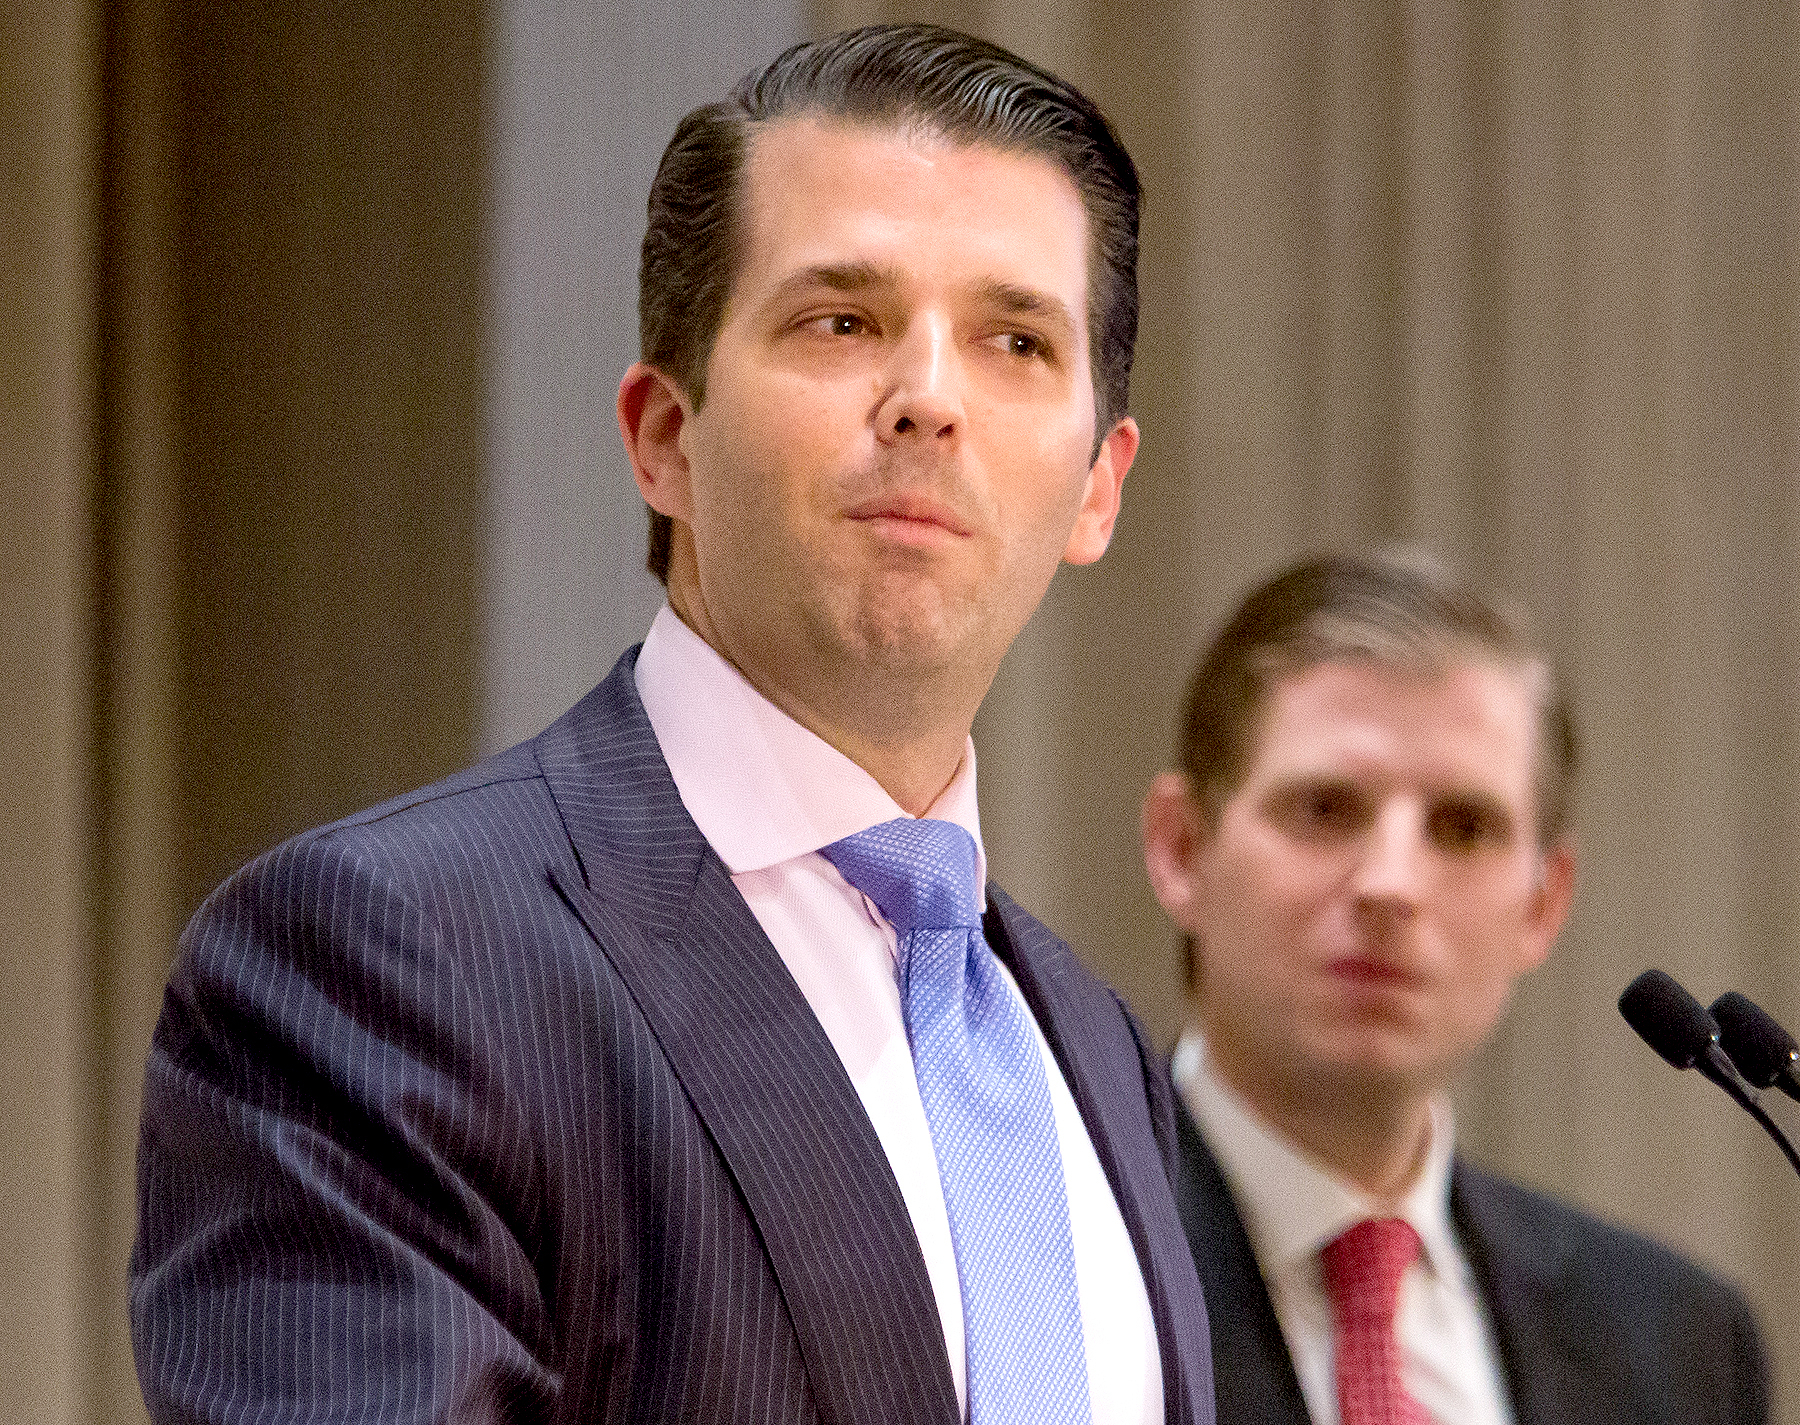 Donald Trump Jr. speaks during the grand opening ceremony of Trump International Hotel & Tower in Vancouver, British Columbia, Canada, on February 28, 2017.